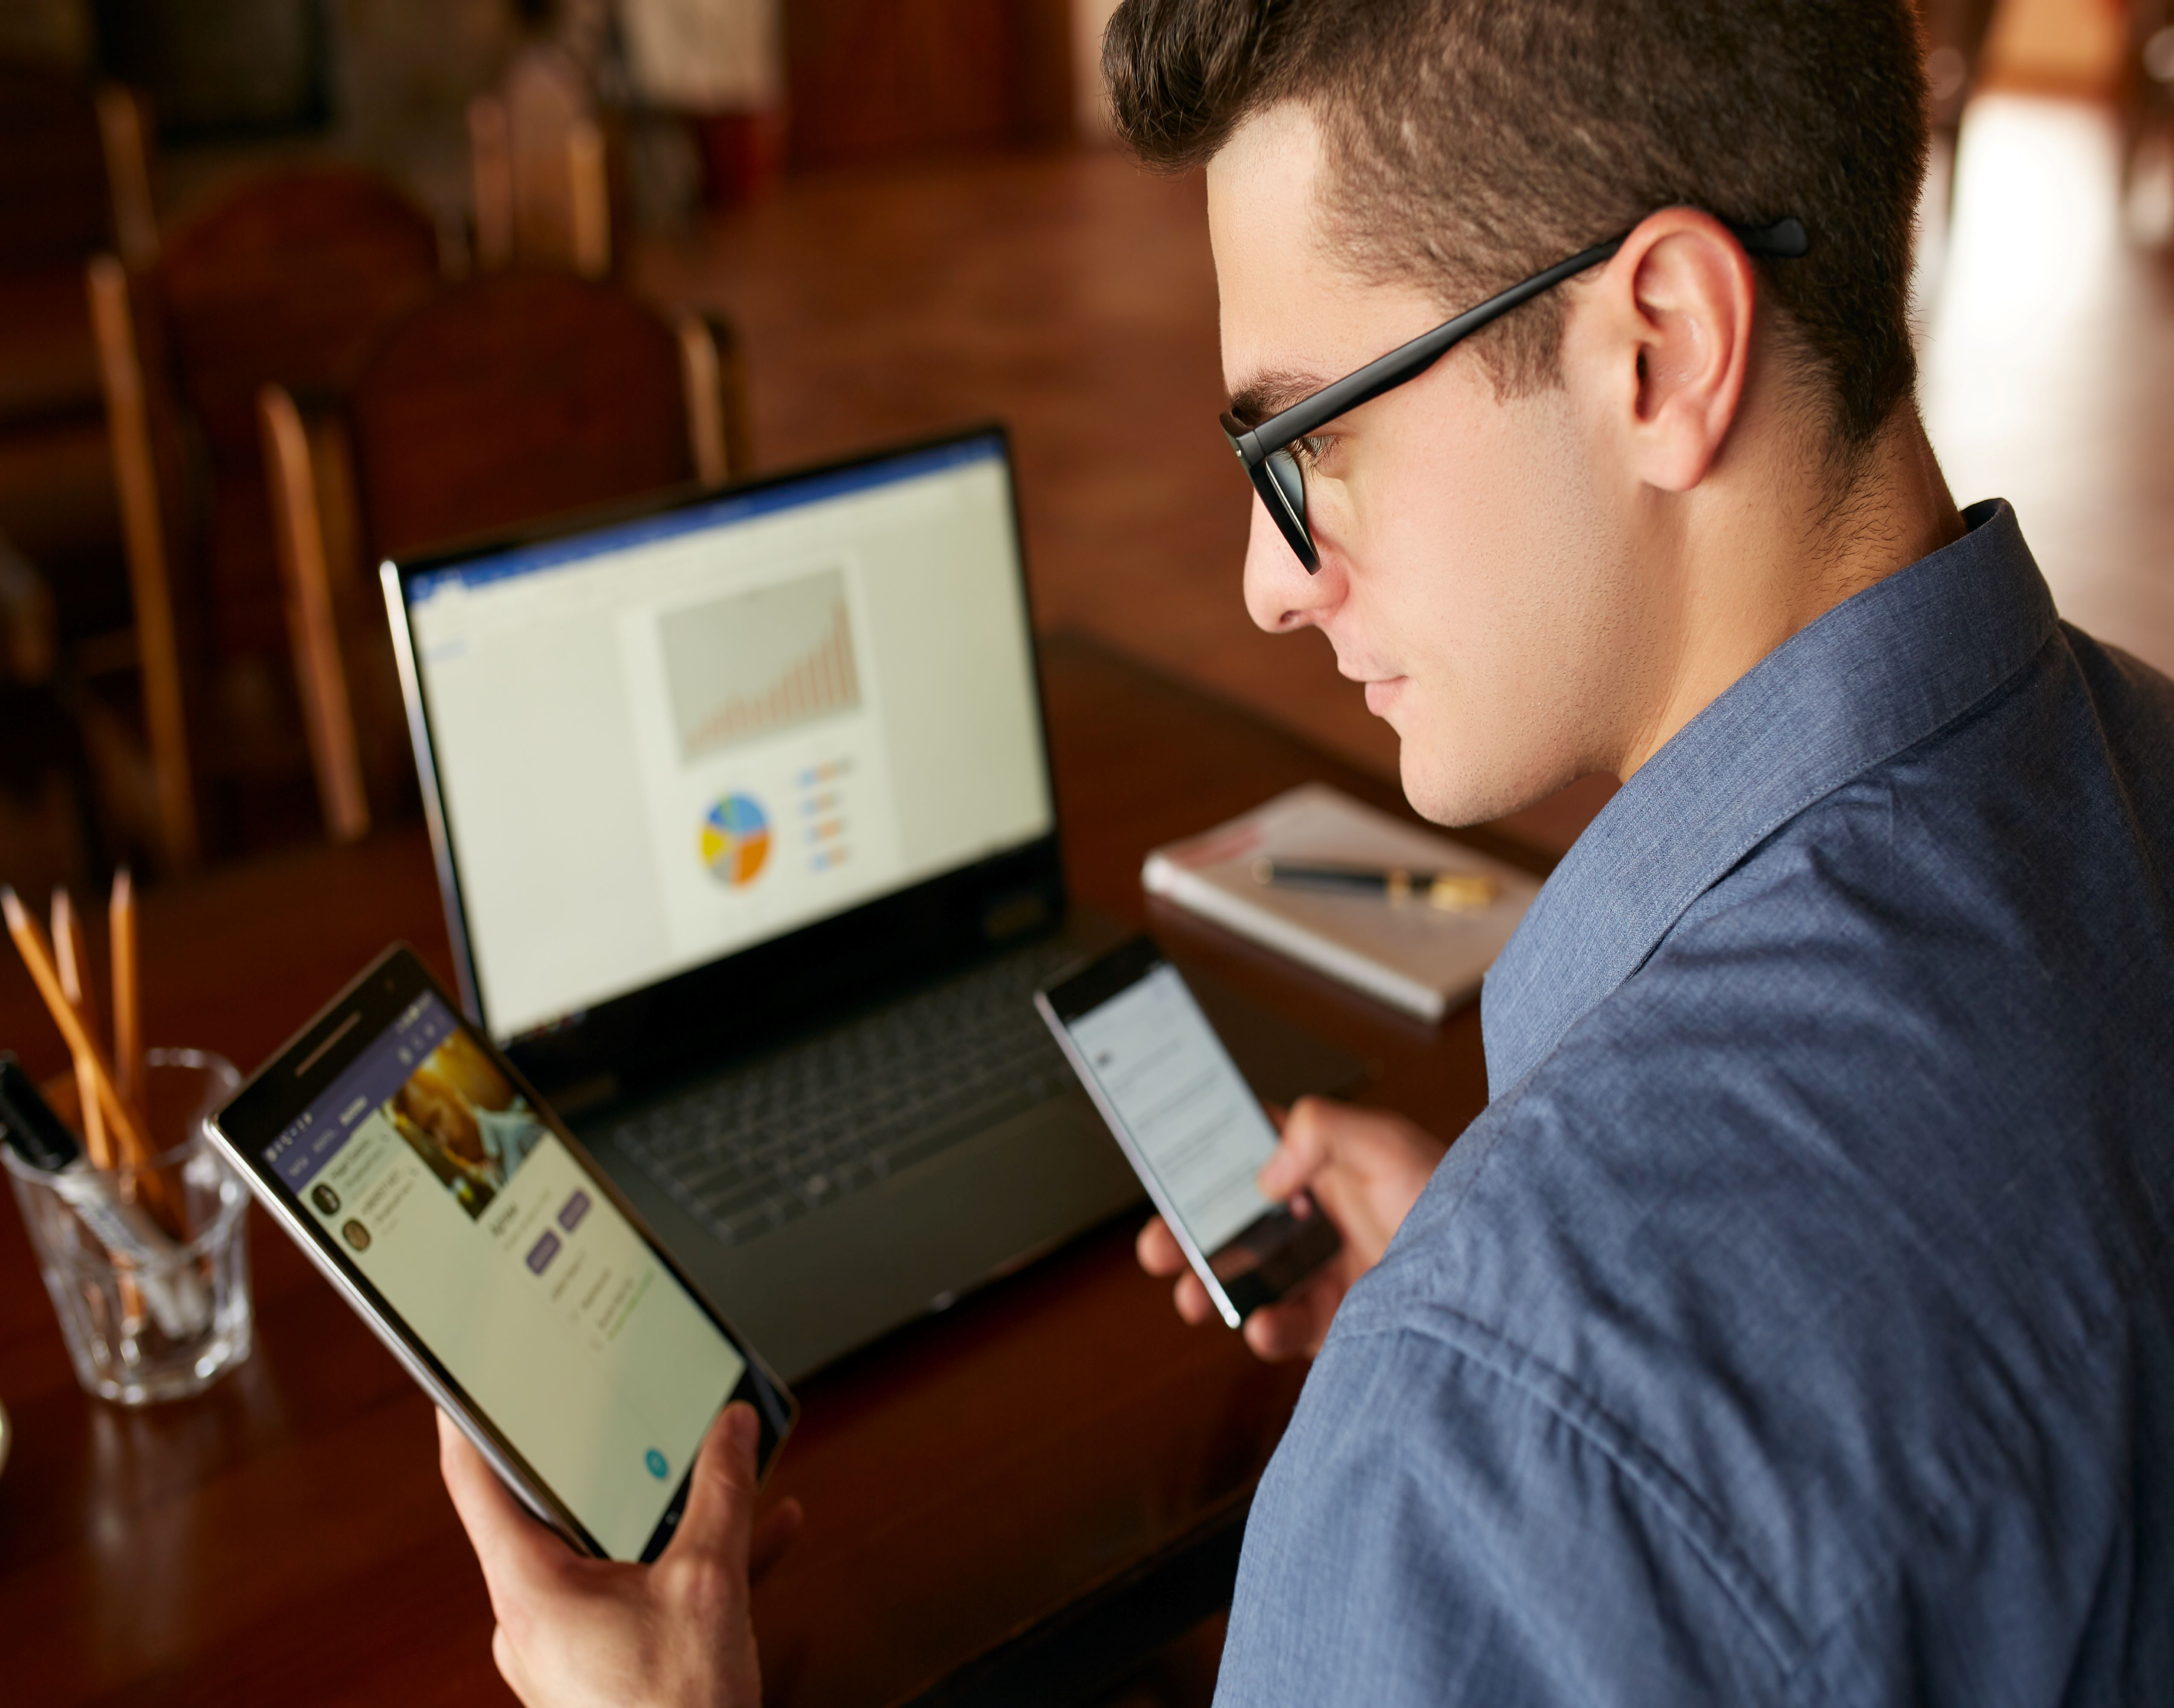 Man using multiple devices at work